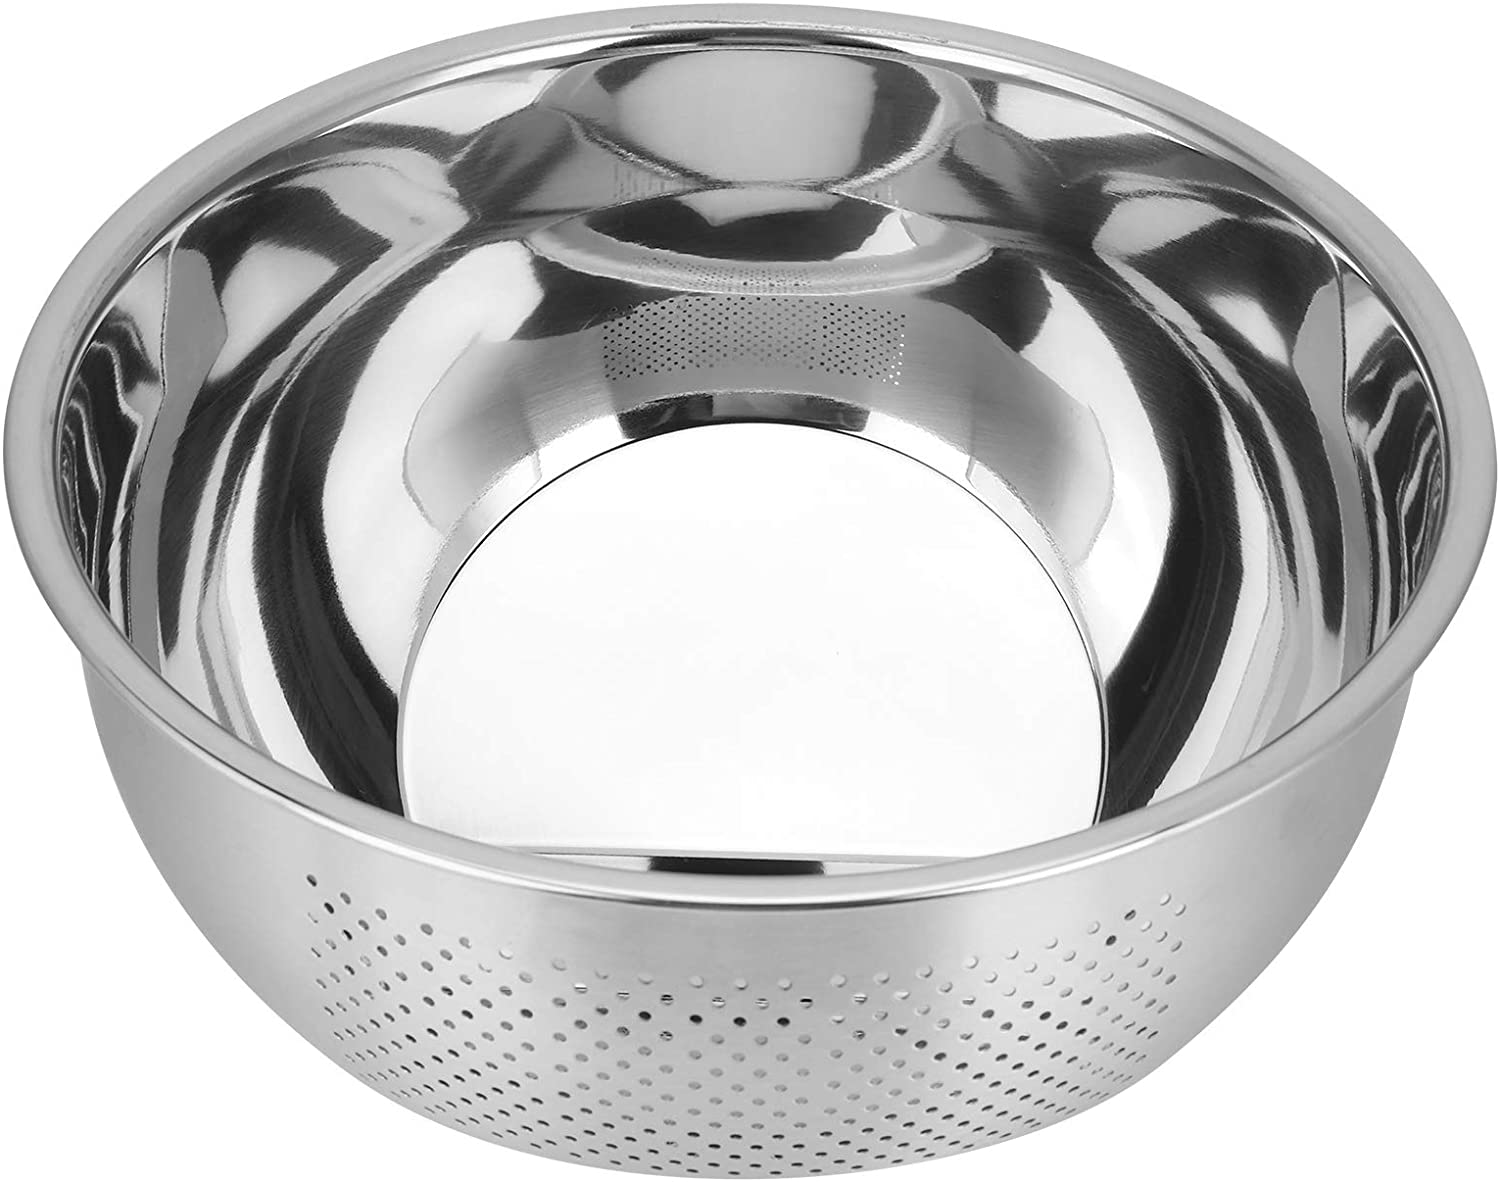 Colander Stainless Steel Dra Corrosion-Resistant Mirror-Polished 5 Columbus Mall popular